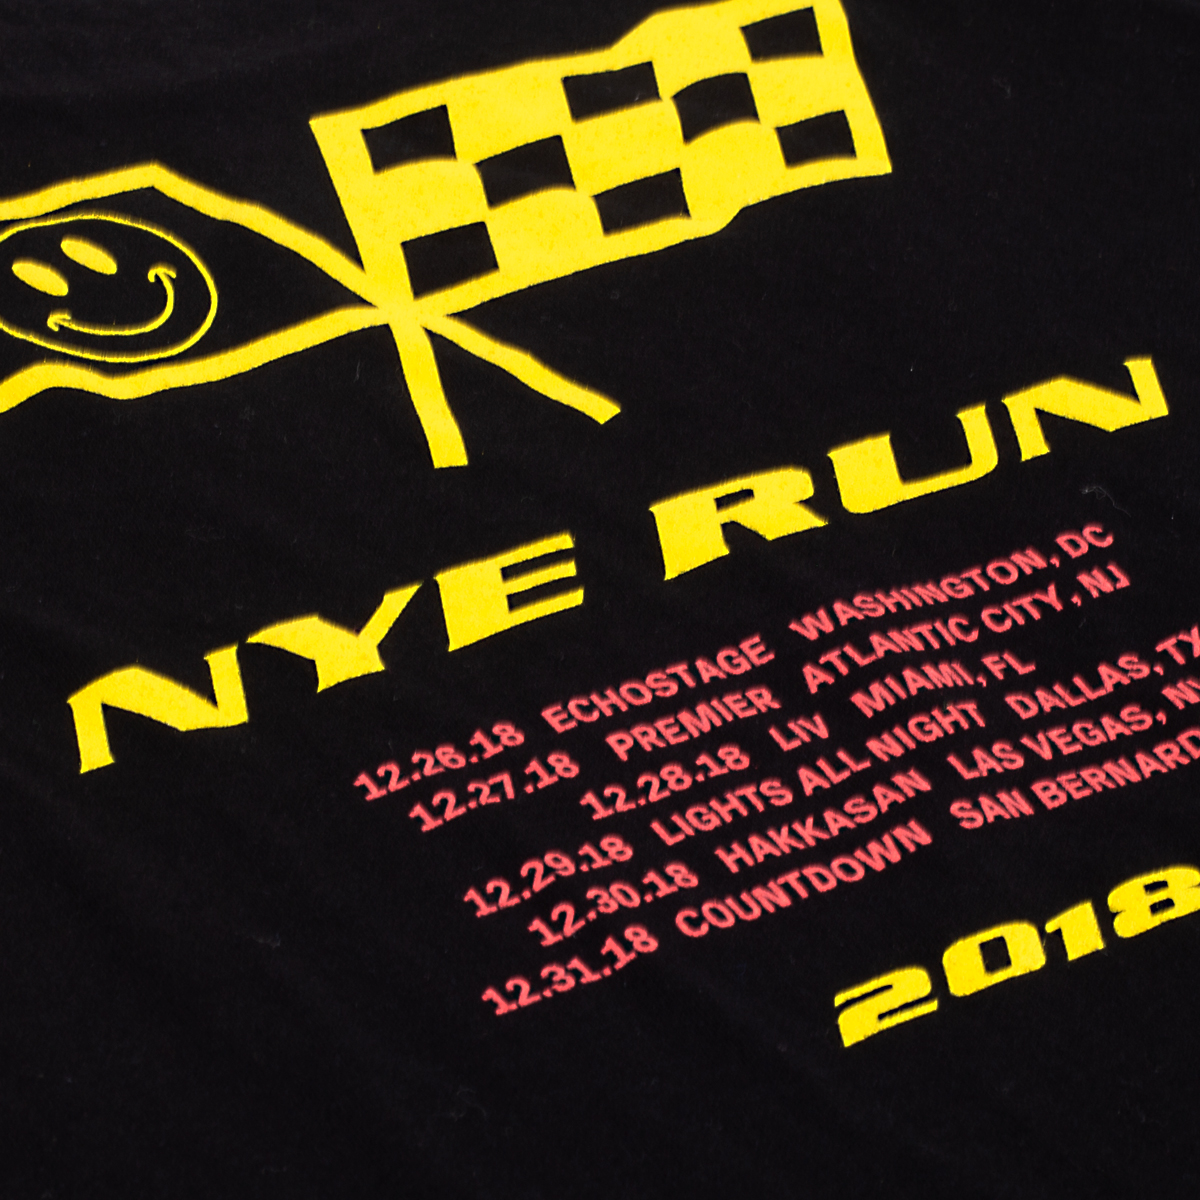 New Year's Run Dateback T-Shirt